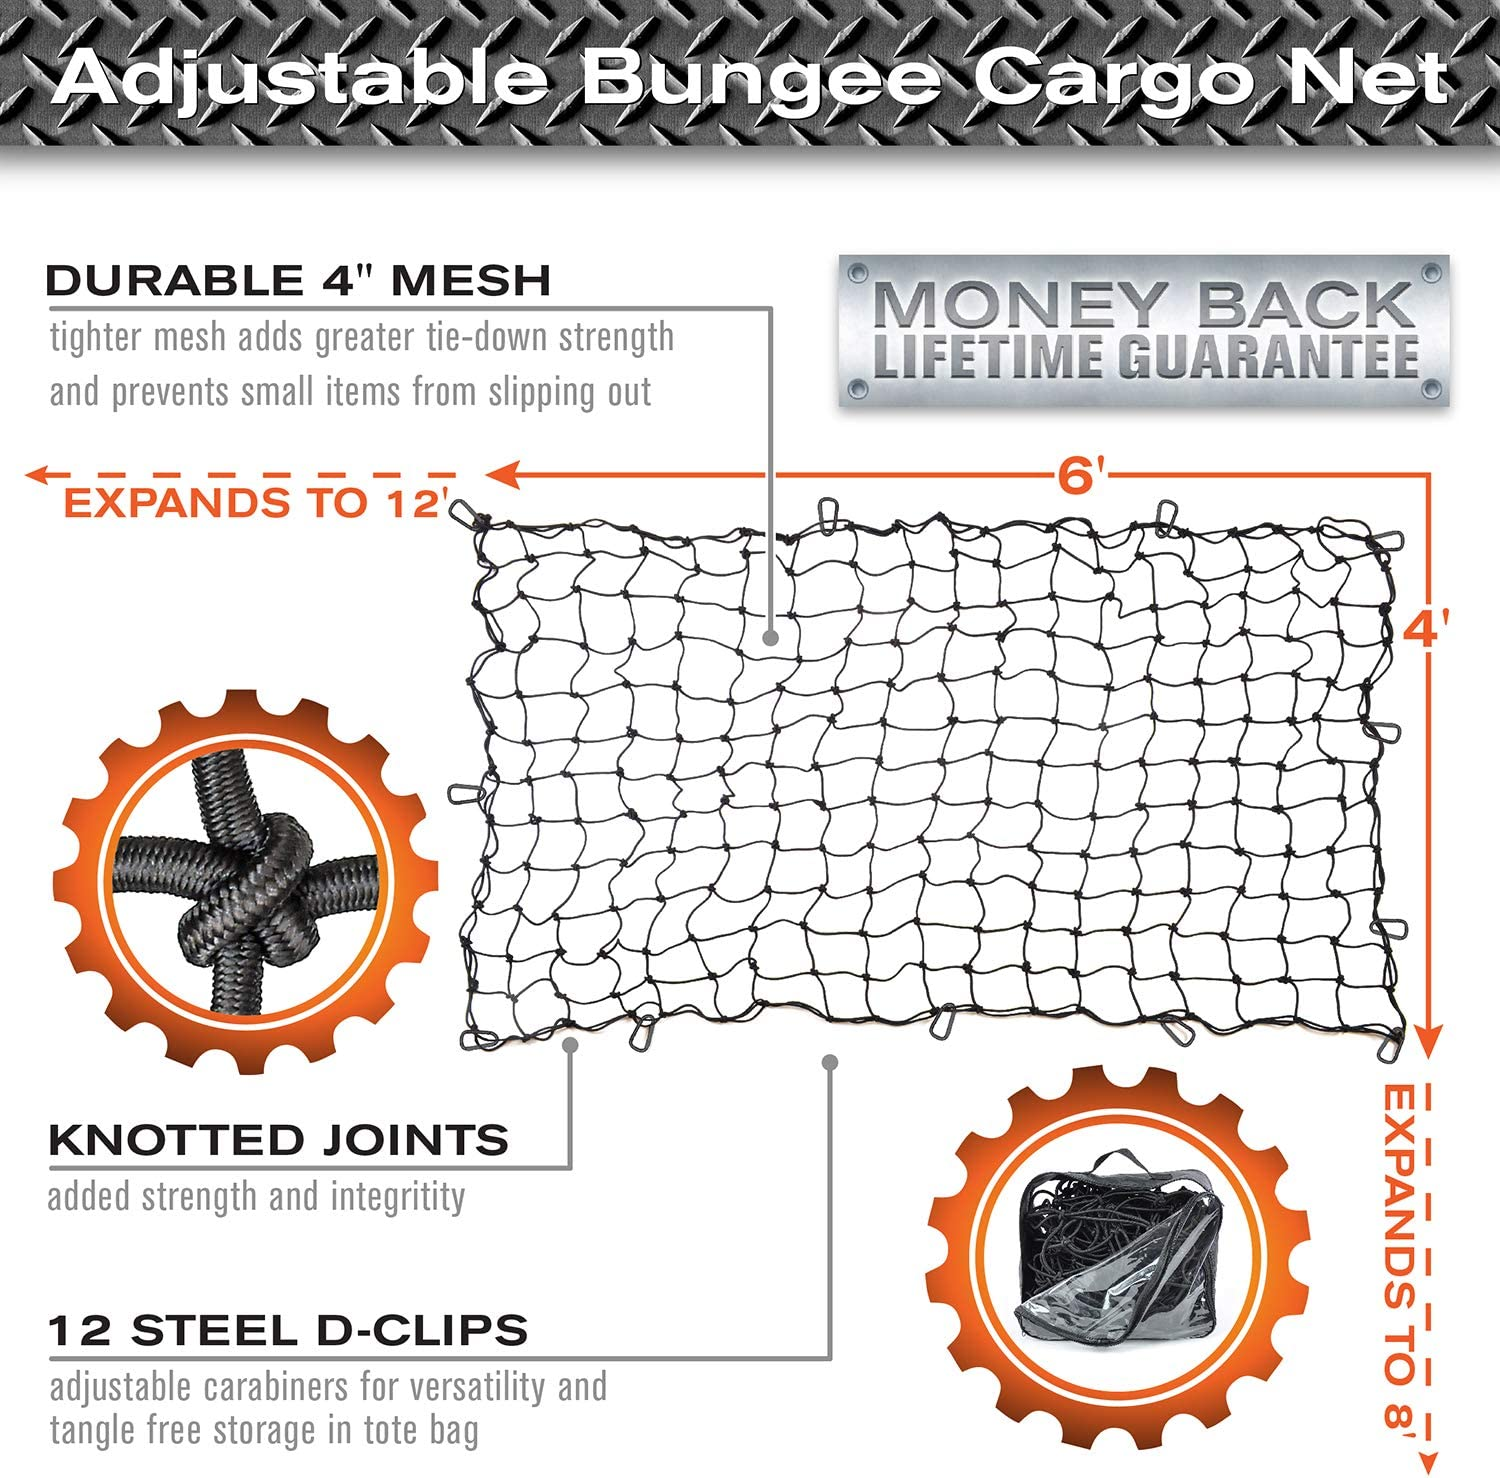 Small 5.5 Mesh Holds Small and Large Loads Tighter 24 Tangle-Free D Clip Carabiners 5x7 Super Duty Bungee Cargo Net for Truck Bed Stretches to 10x14